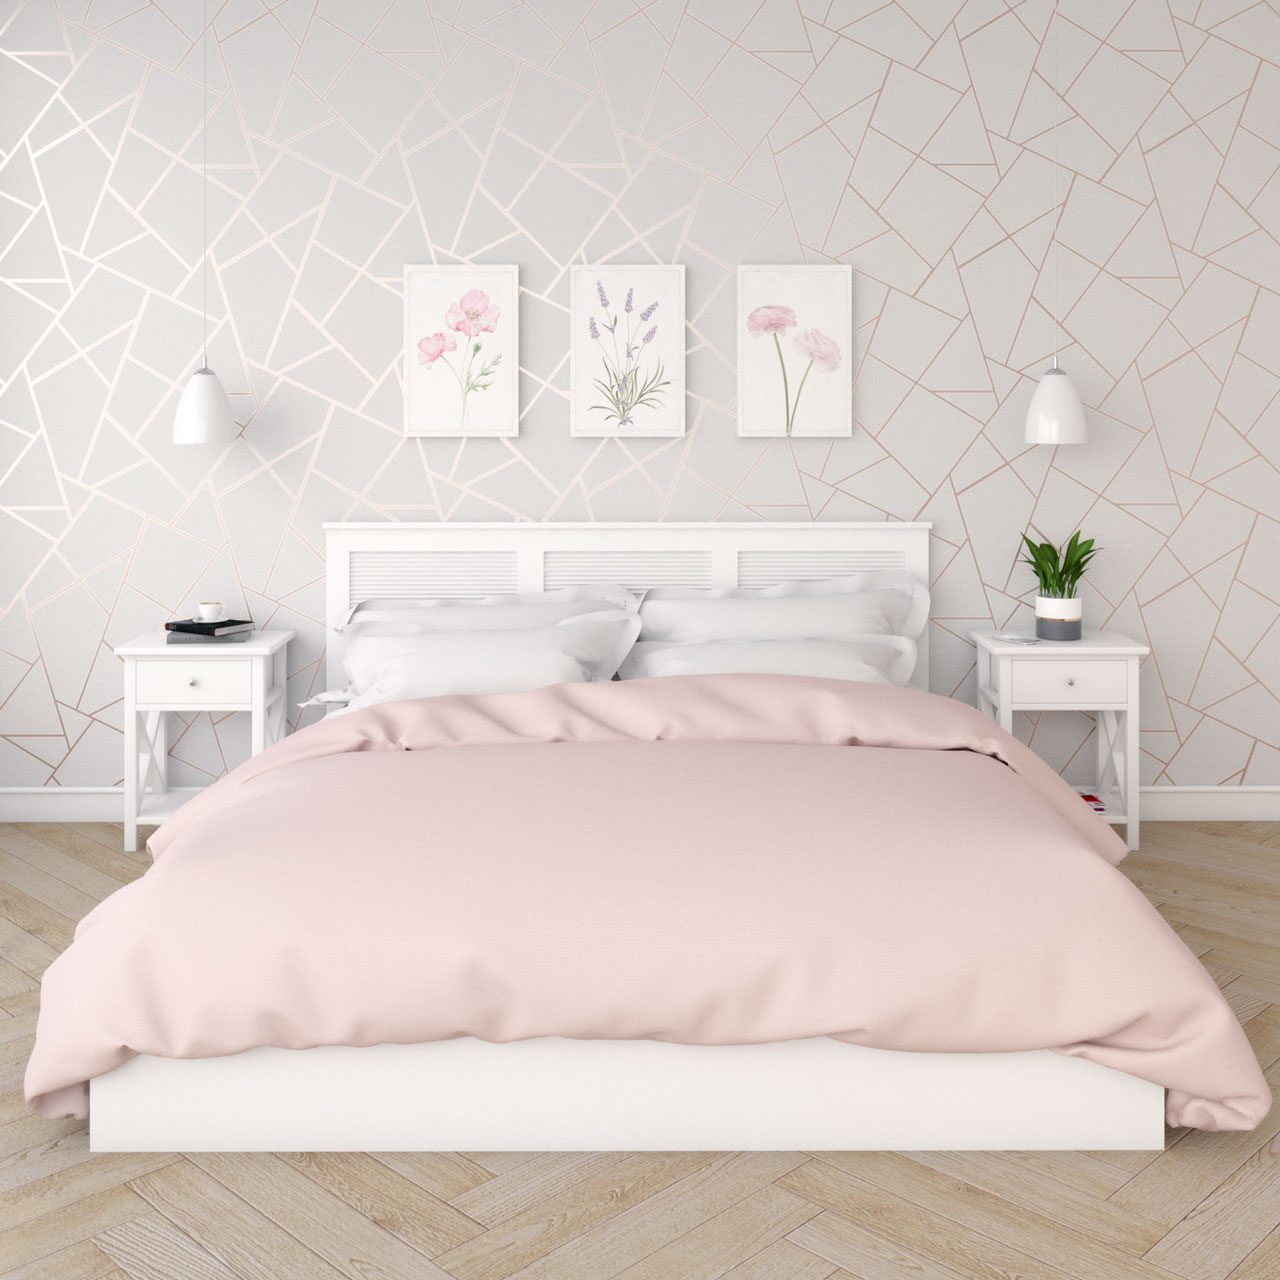 Rose gold bedroom wallpaper ideas